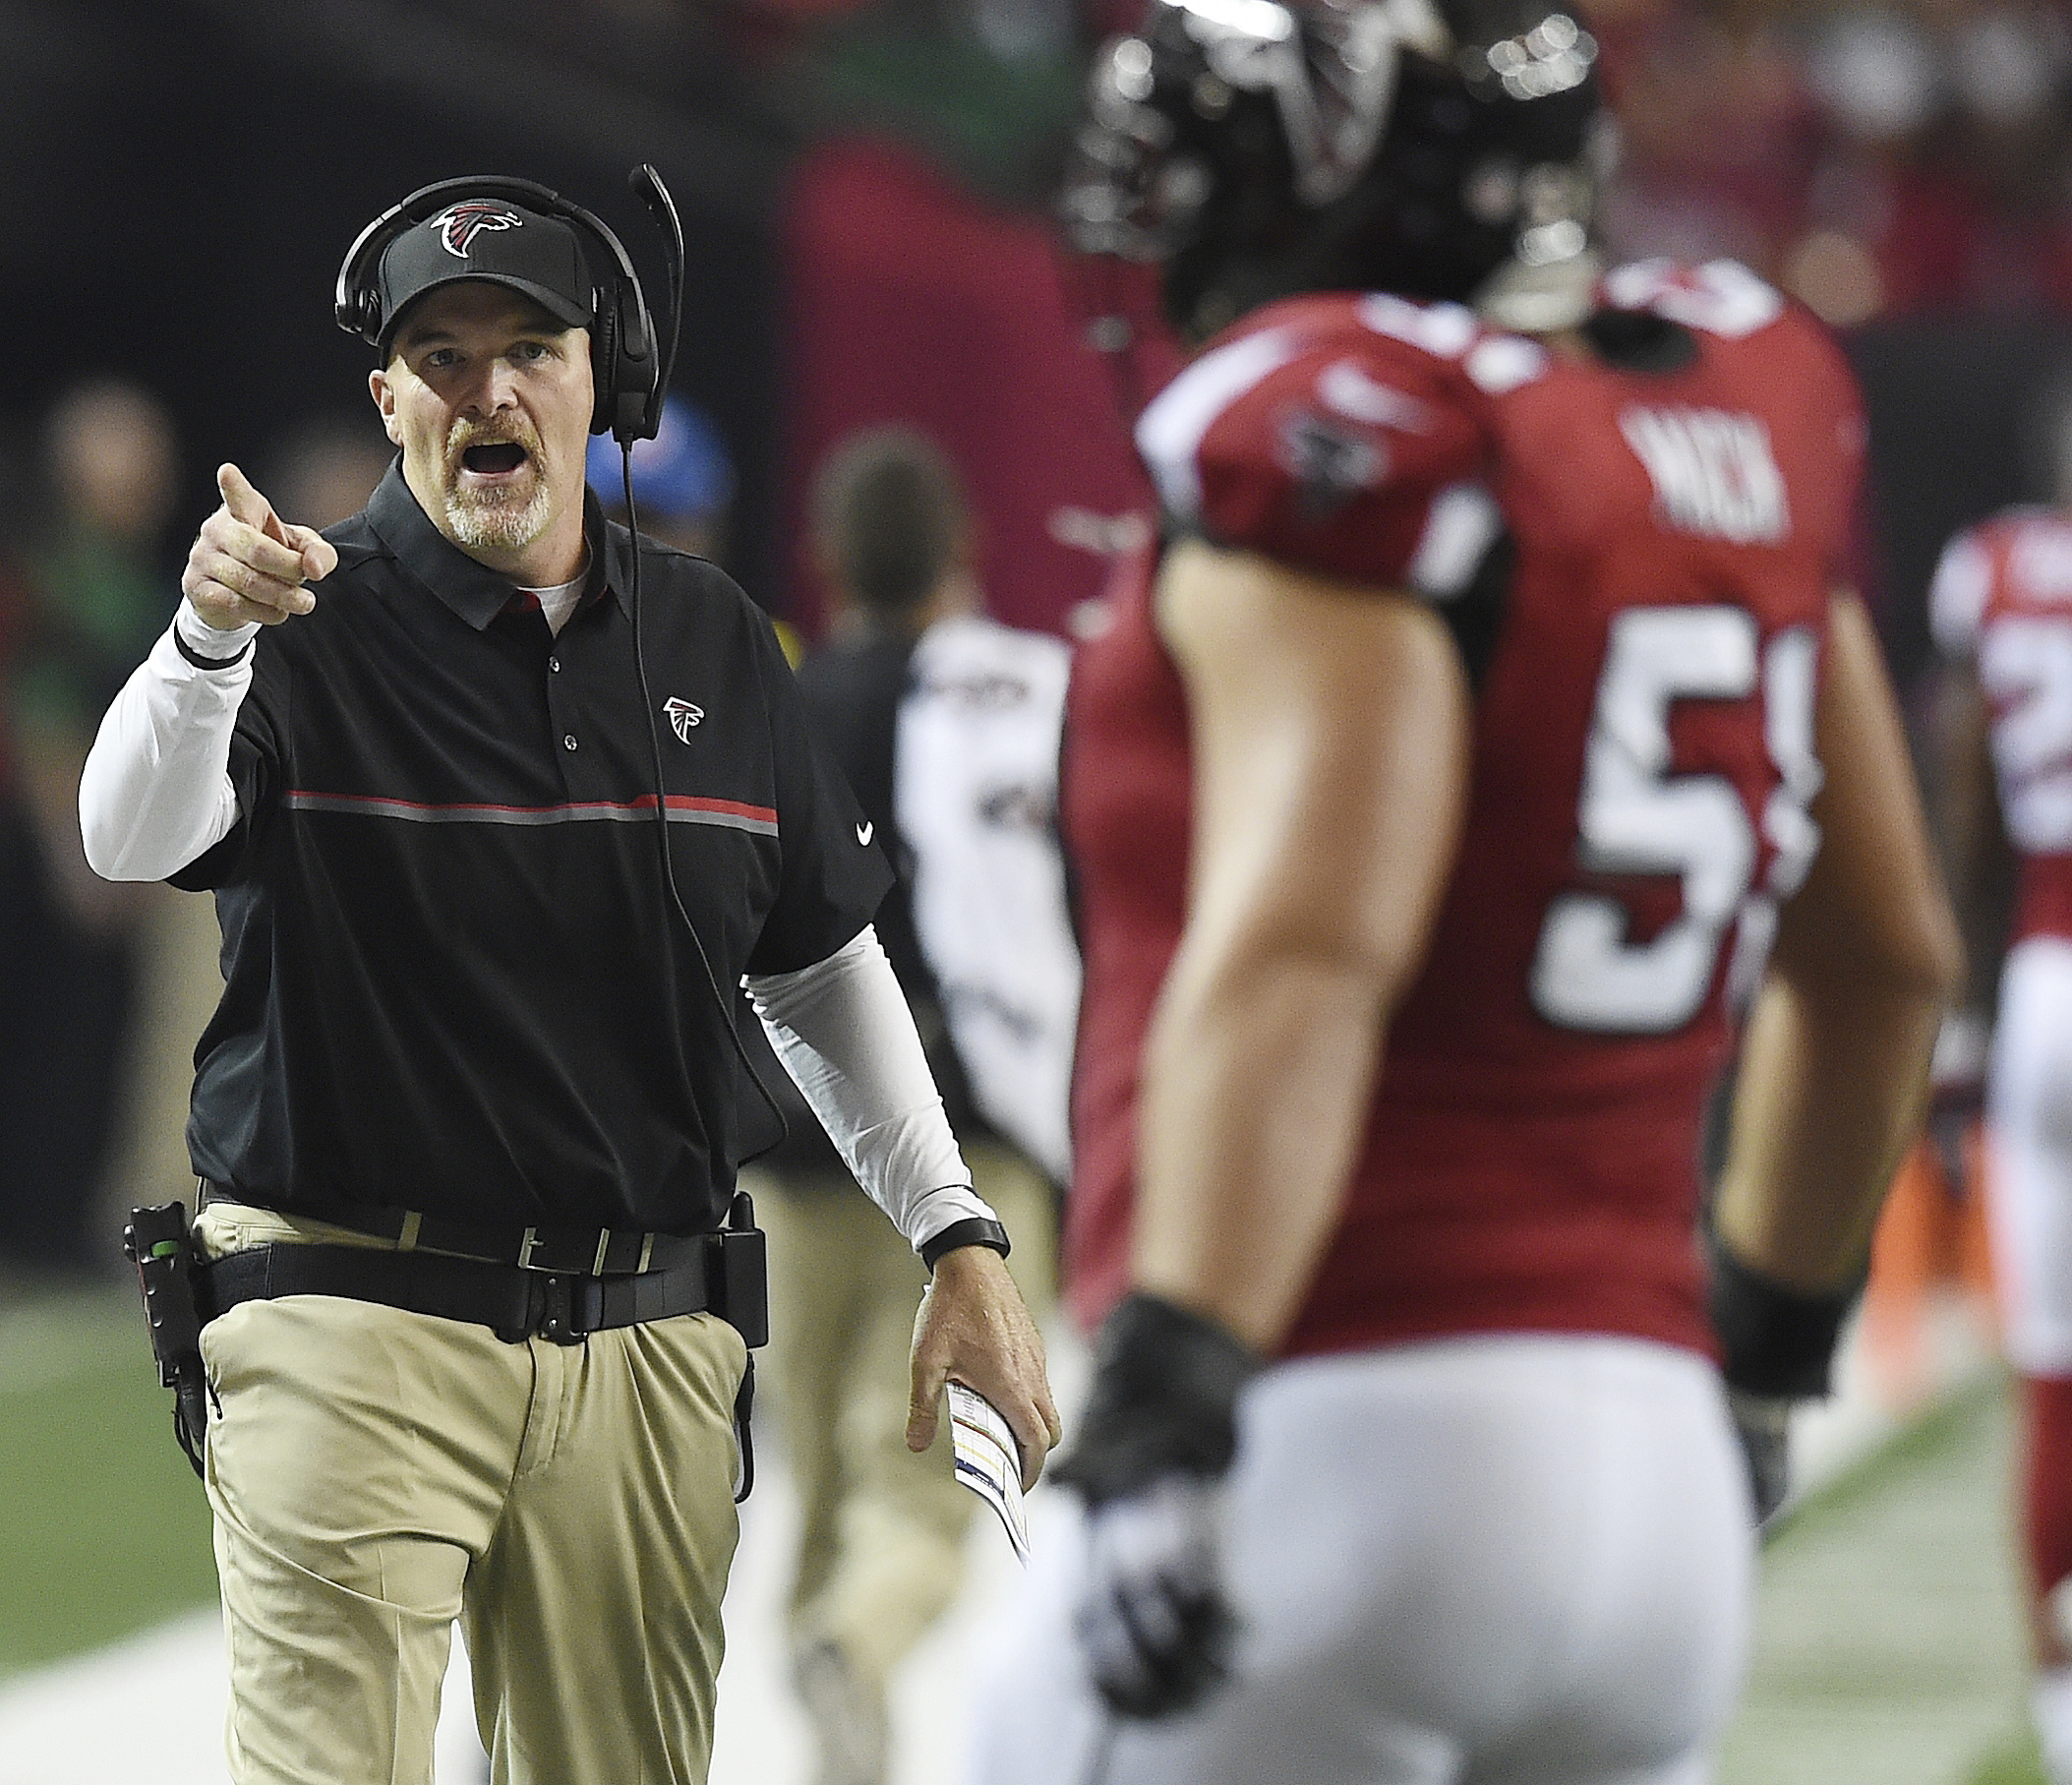 Atlanta Falcons head coach Dan Quinn speaks to Atlanta Falcons defensive end Brooks Reed (50) during the first of an NFL football game between the Atlanta Falcons and the Green Bay Packers, Sunday, Oct. 30, 2016, in Atlanta. (AP Photo/Rainier Ehrhardt)